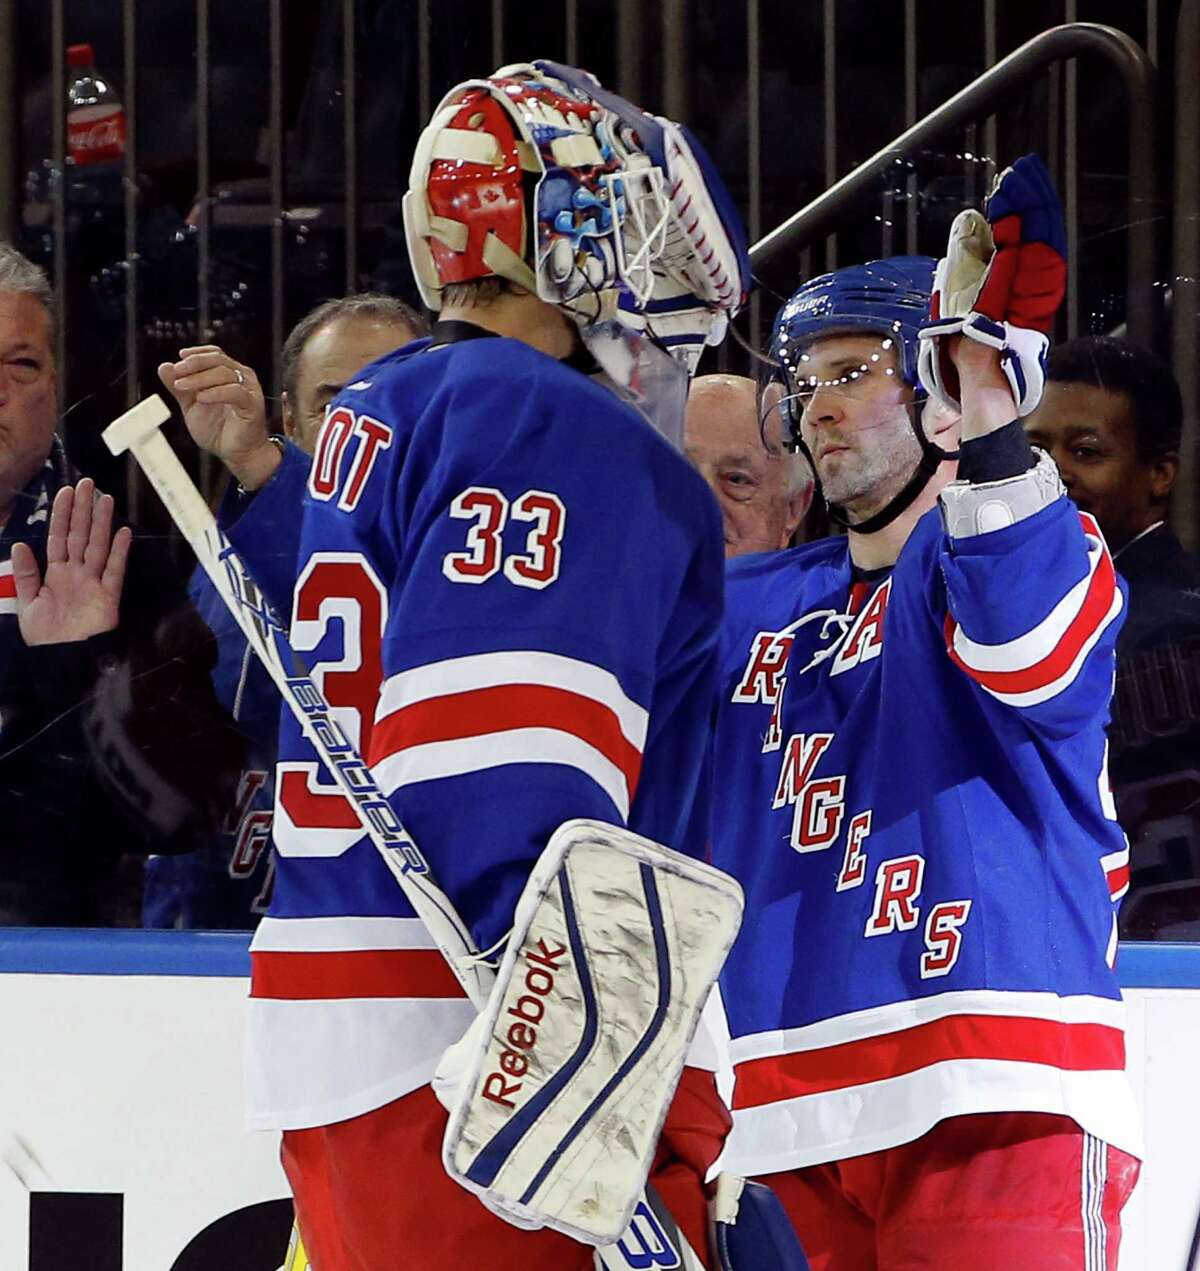 New York Rangers right wing Martin St. Louis (26) celebrates with New York Rangers goalie Cam Talbot (33) after an NHL hockey game against the Columbus Blue Jackets at Madison Square Garden in New York, Sunday, Feb. 22, 2015. The Rangers defeated the Blue Jackets 4-3 in a shootout on Rick Nash's goal. (AP Photo/Kathy Willens) ORG XMIT: MSG111